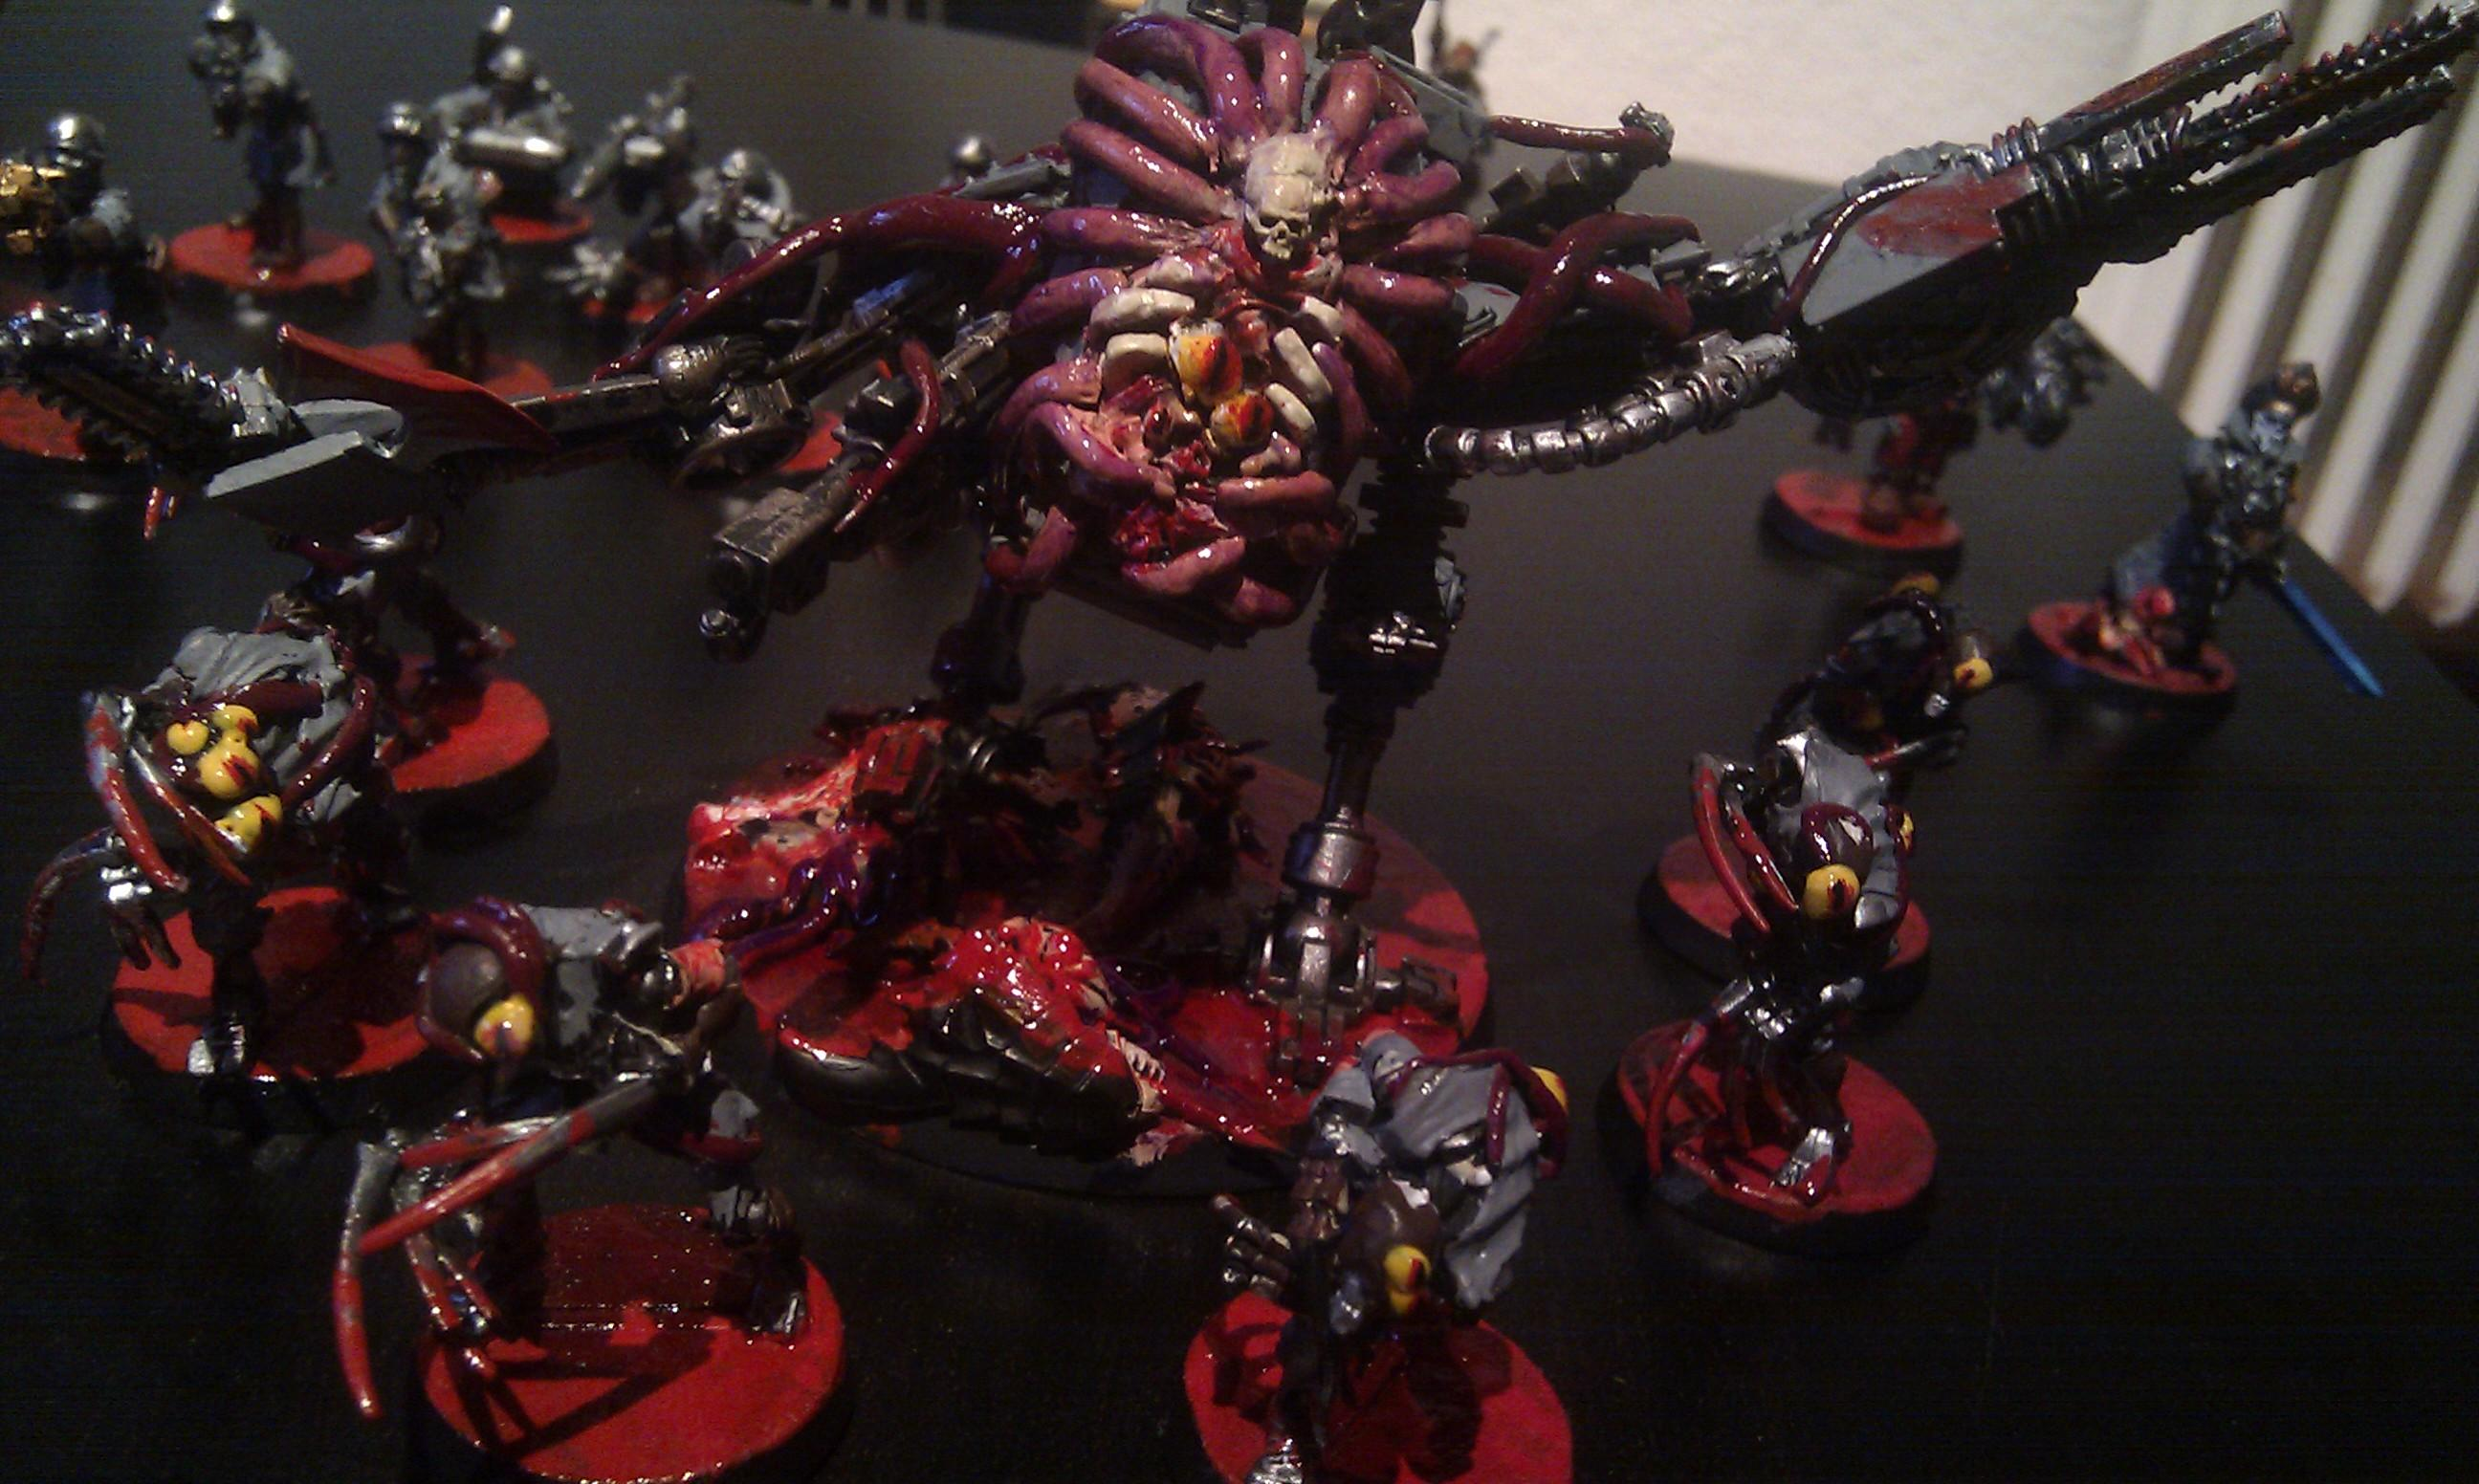 Daemons, Engine, Evil, Eyes, Hunter, Penitent, Sentinel, Slayer, Slayers, Twisted, Witch, Witchhunters